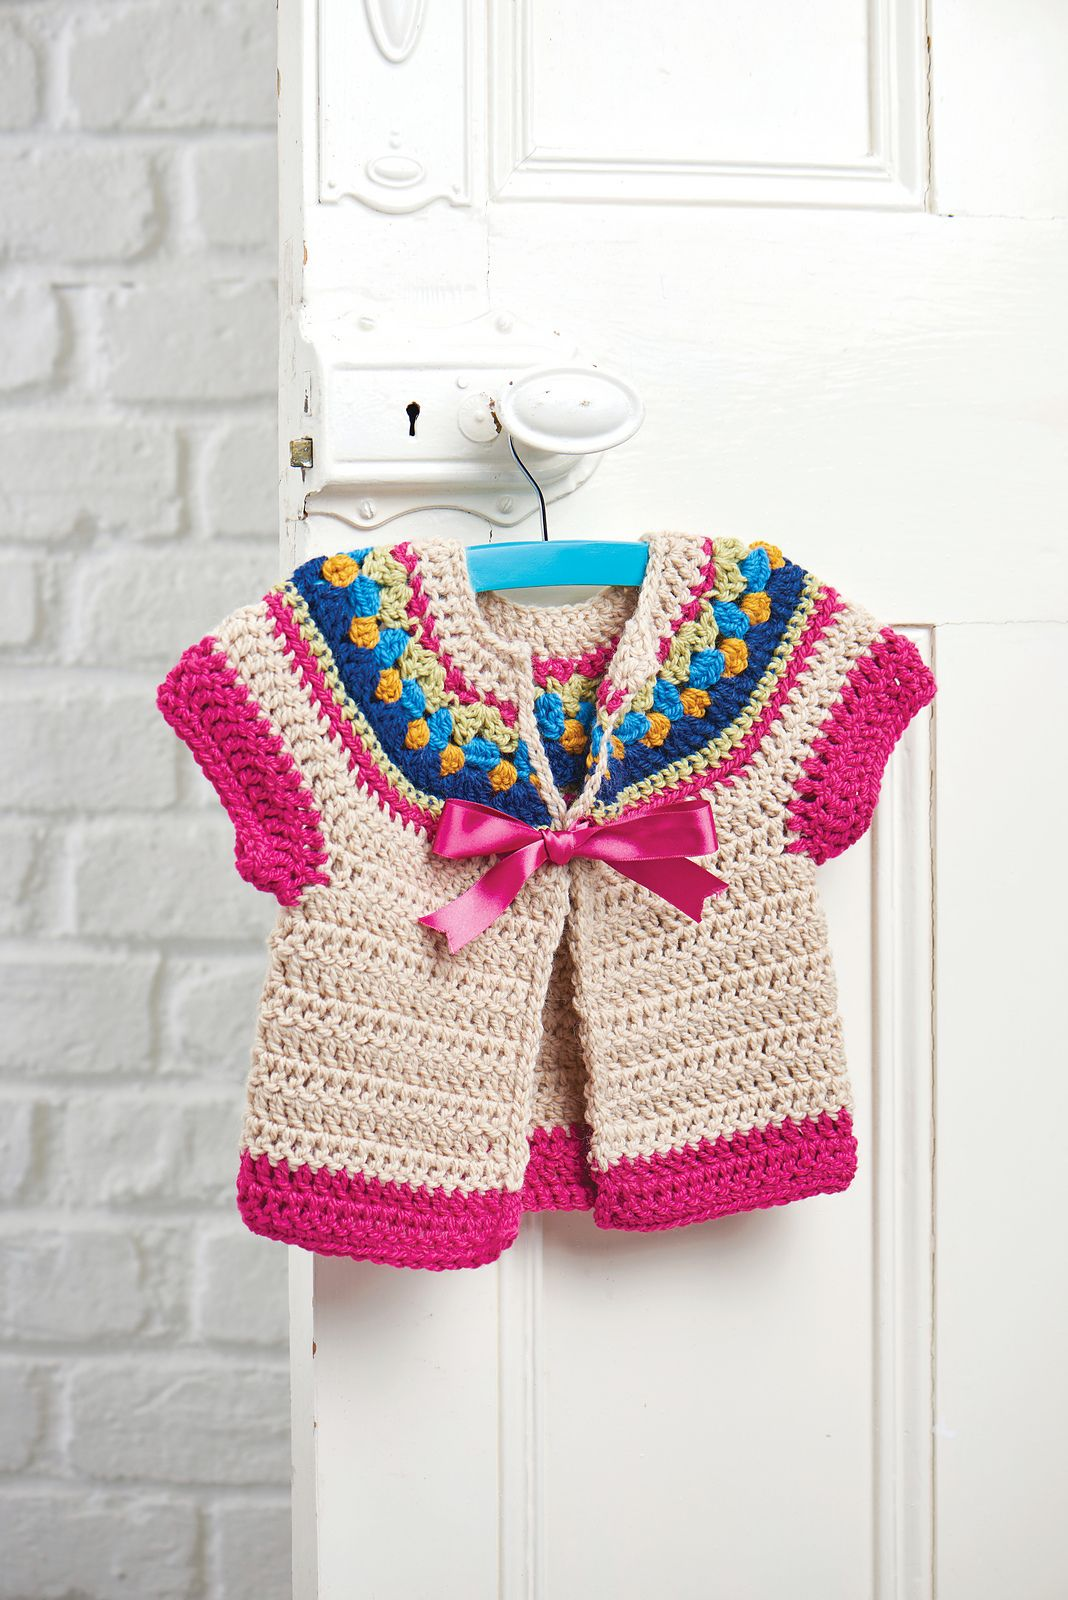 Sugar & Spice pattern by Simone Francis | Crochet | Pinterest ...